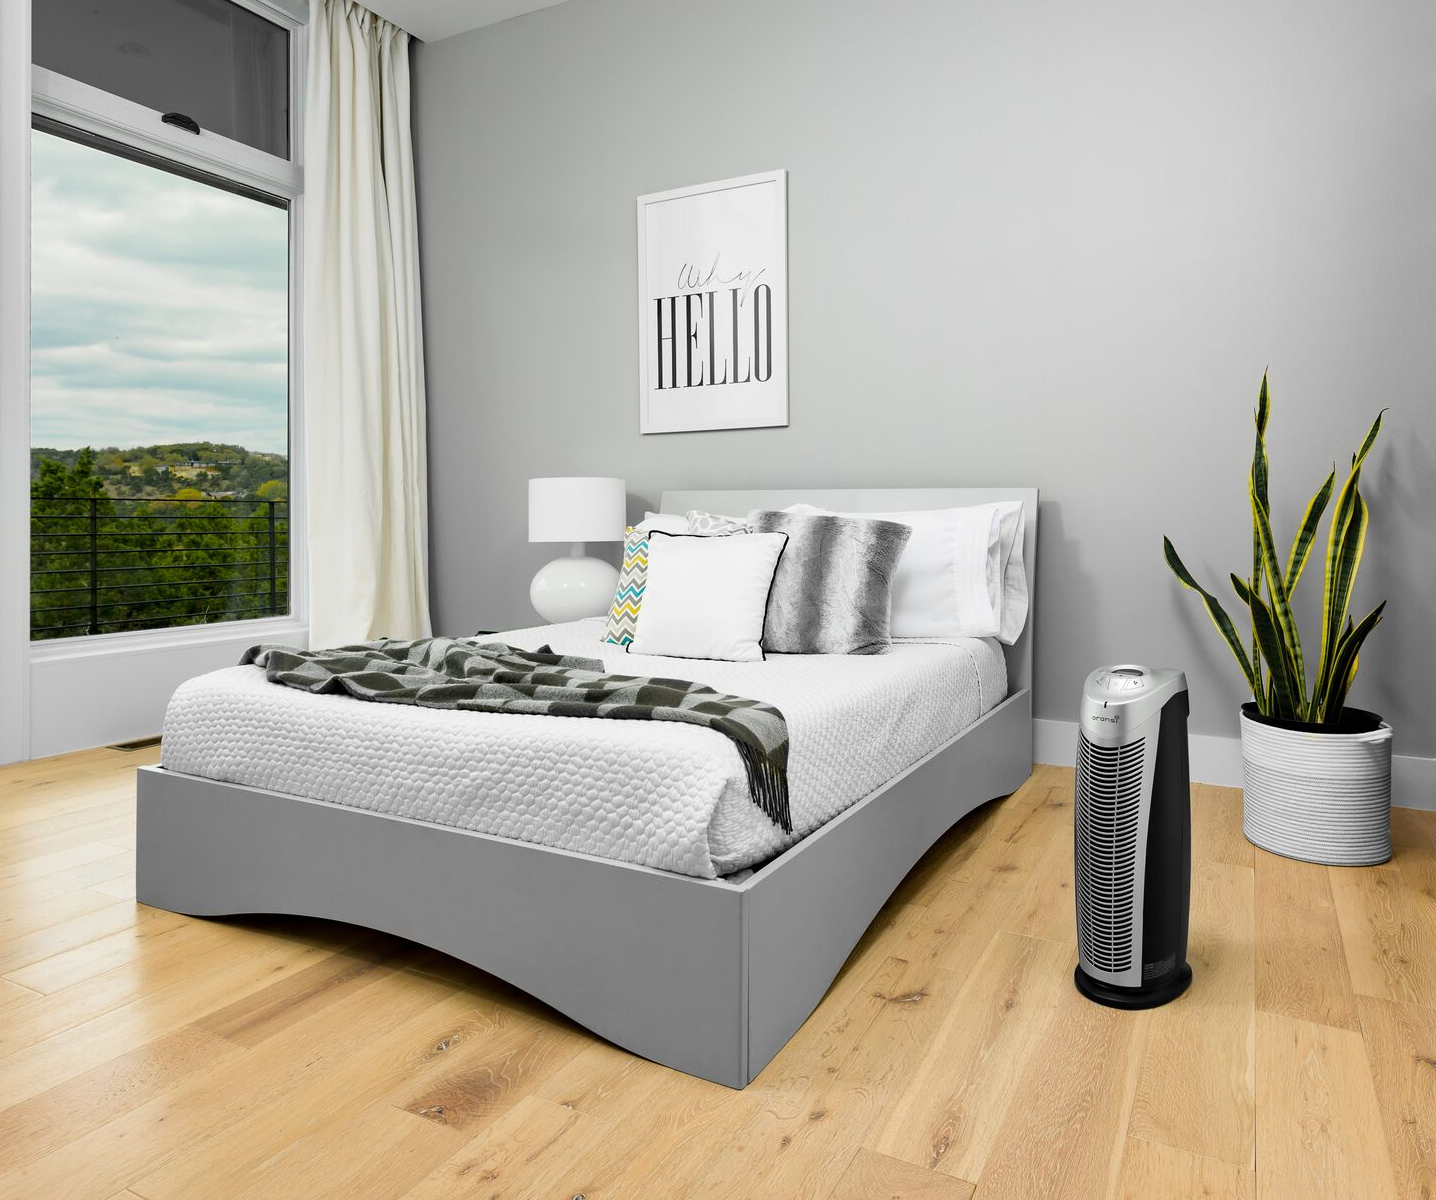 Finn air purifier in dorm room